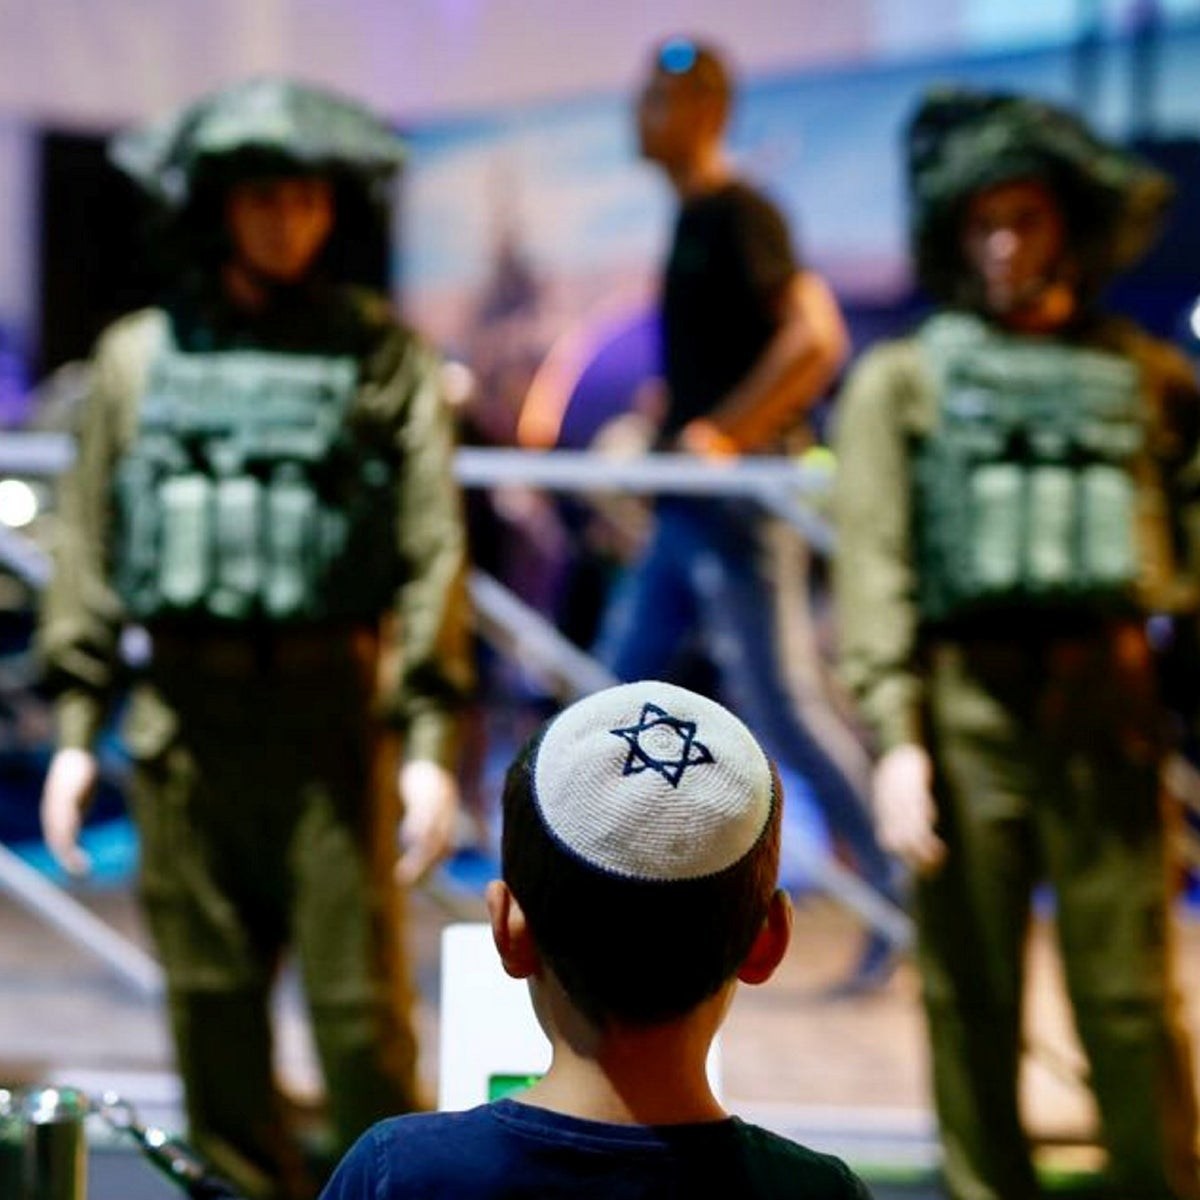 The 'Our IDF' exhibition in Holon.